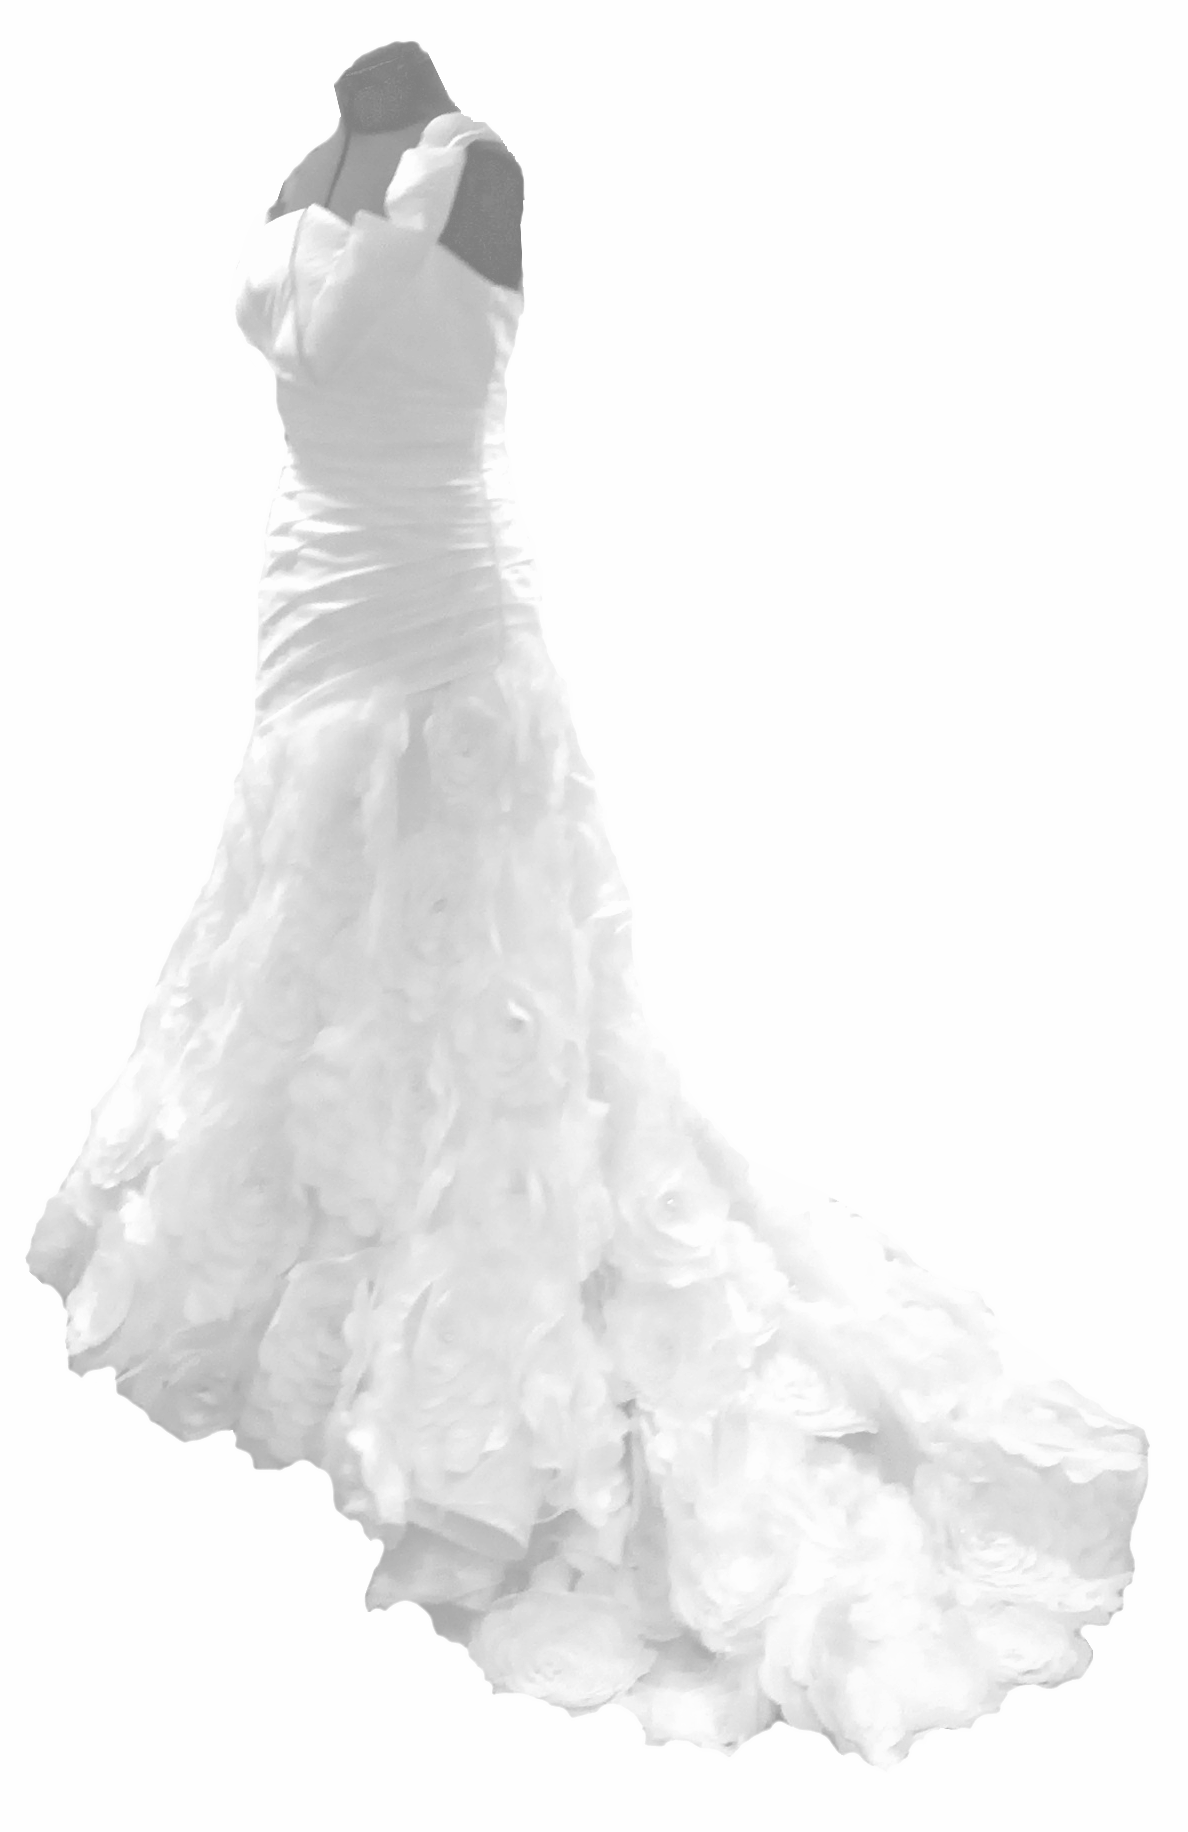 White dress png. Images free download